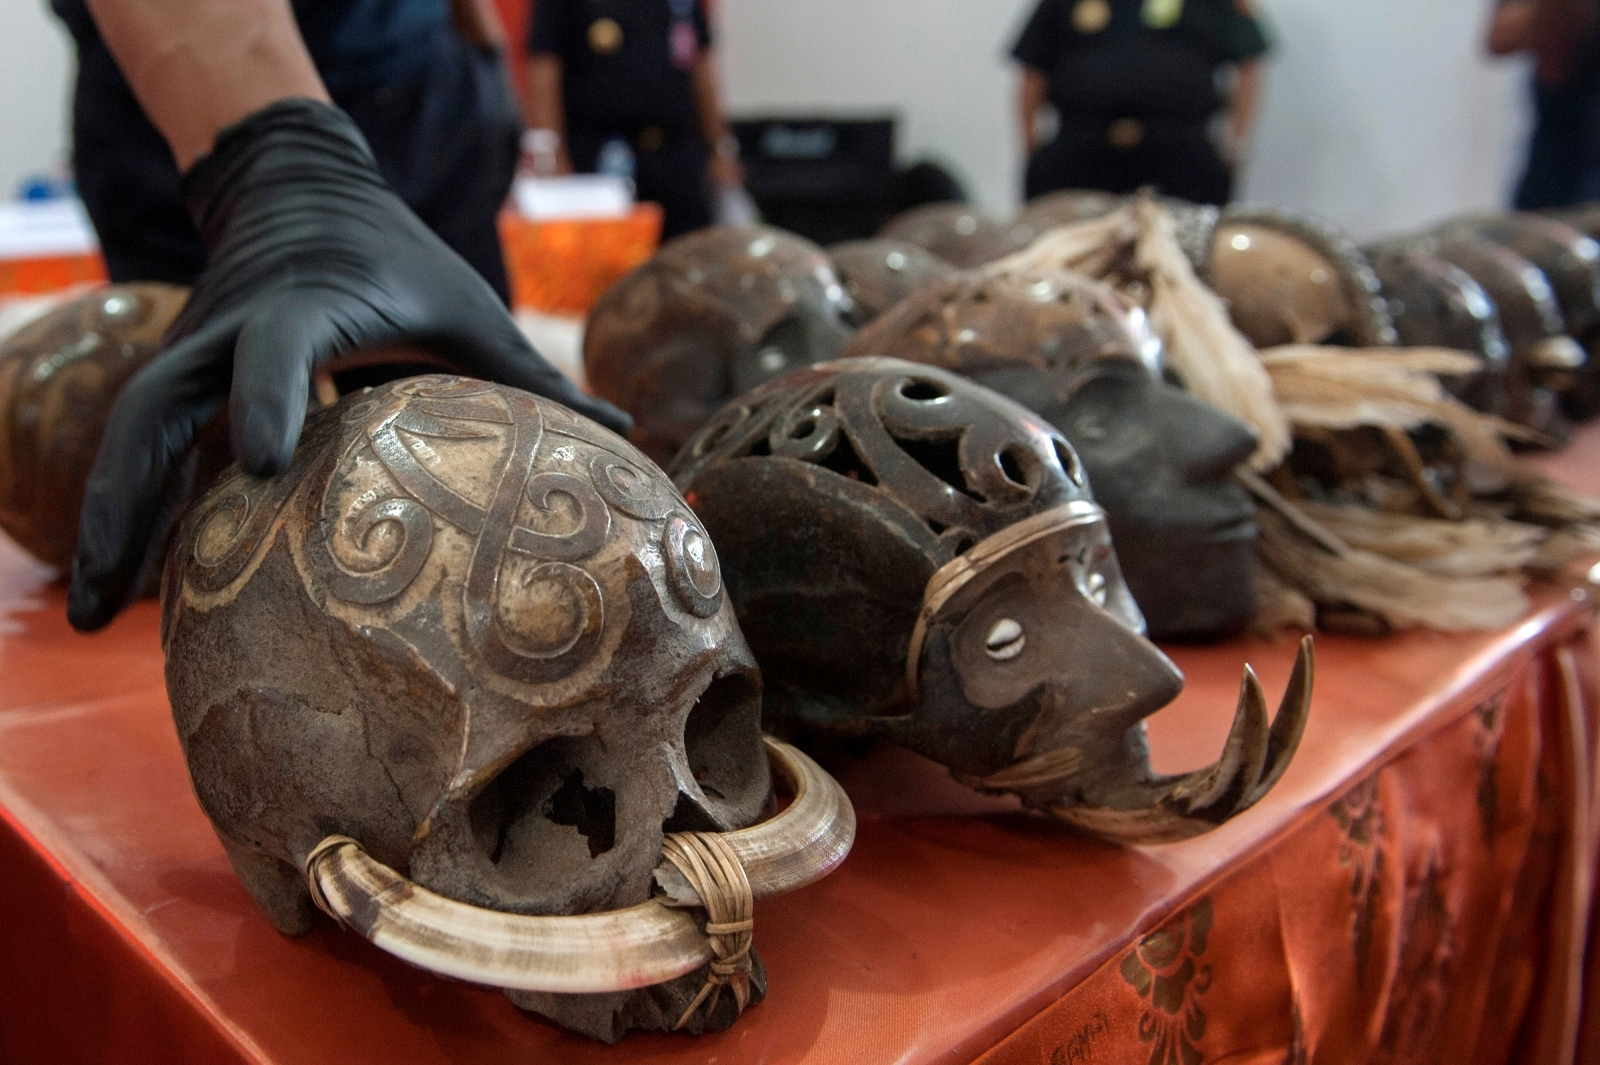 Indonesia foils plot to smuggle 24 human skulls through the postal service